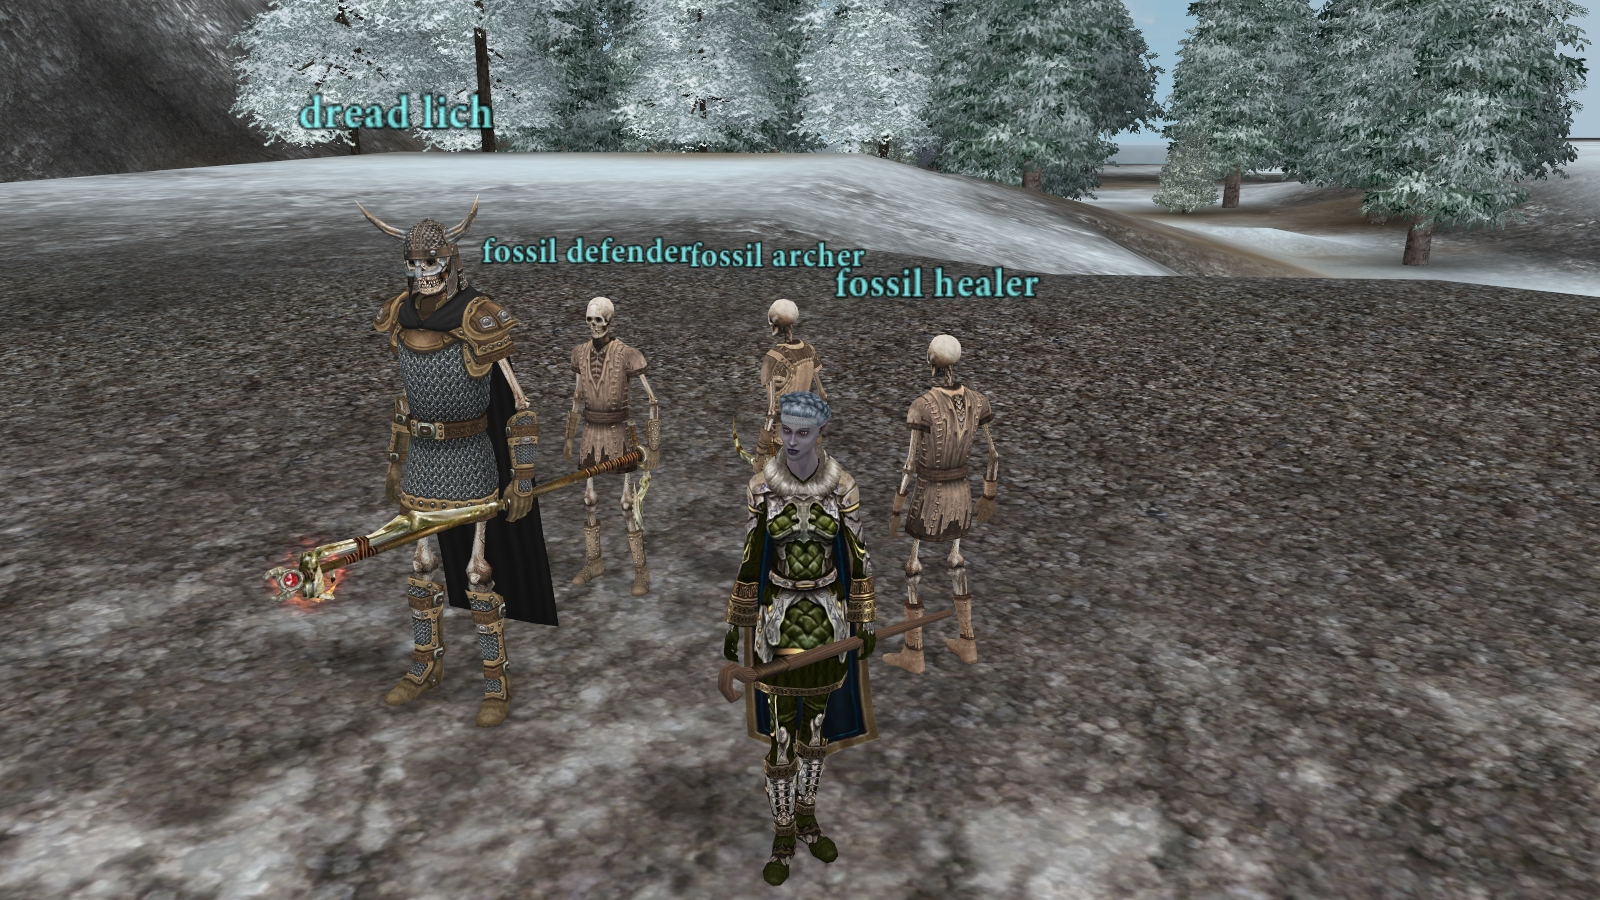 Dark Age of Camelot - Play the award winning RvR MMO RPG!